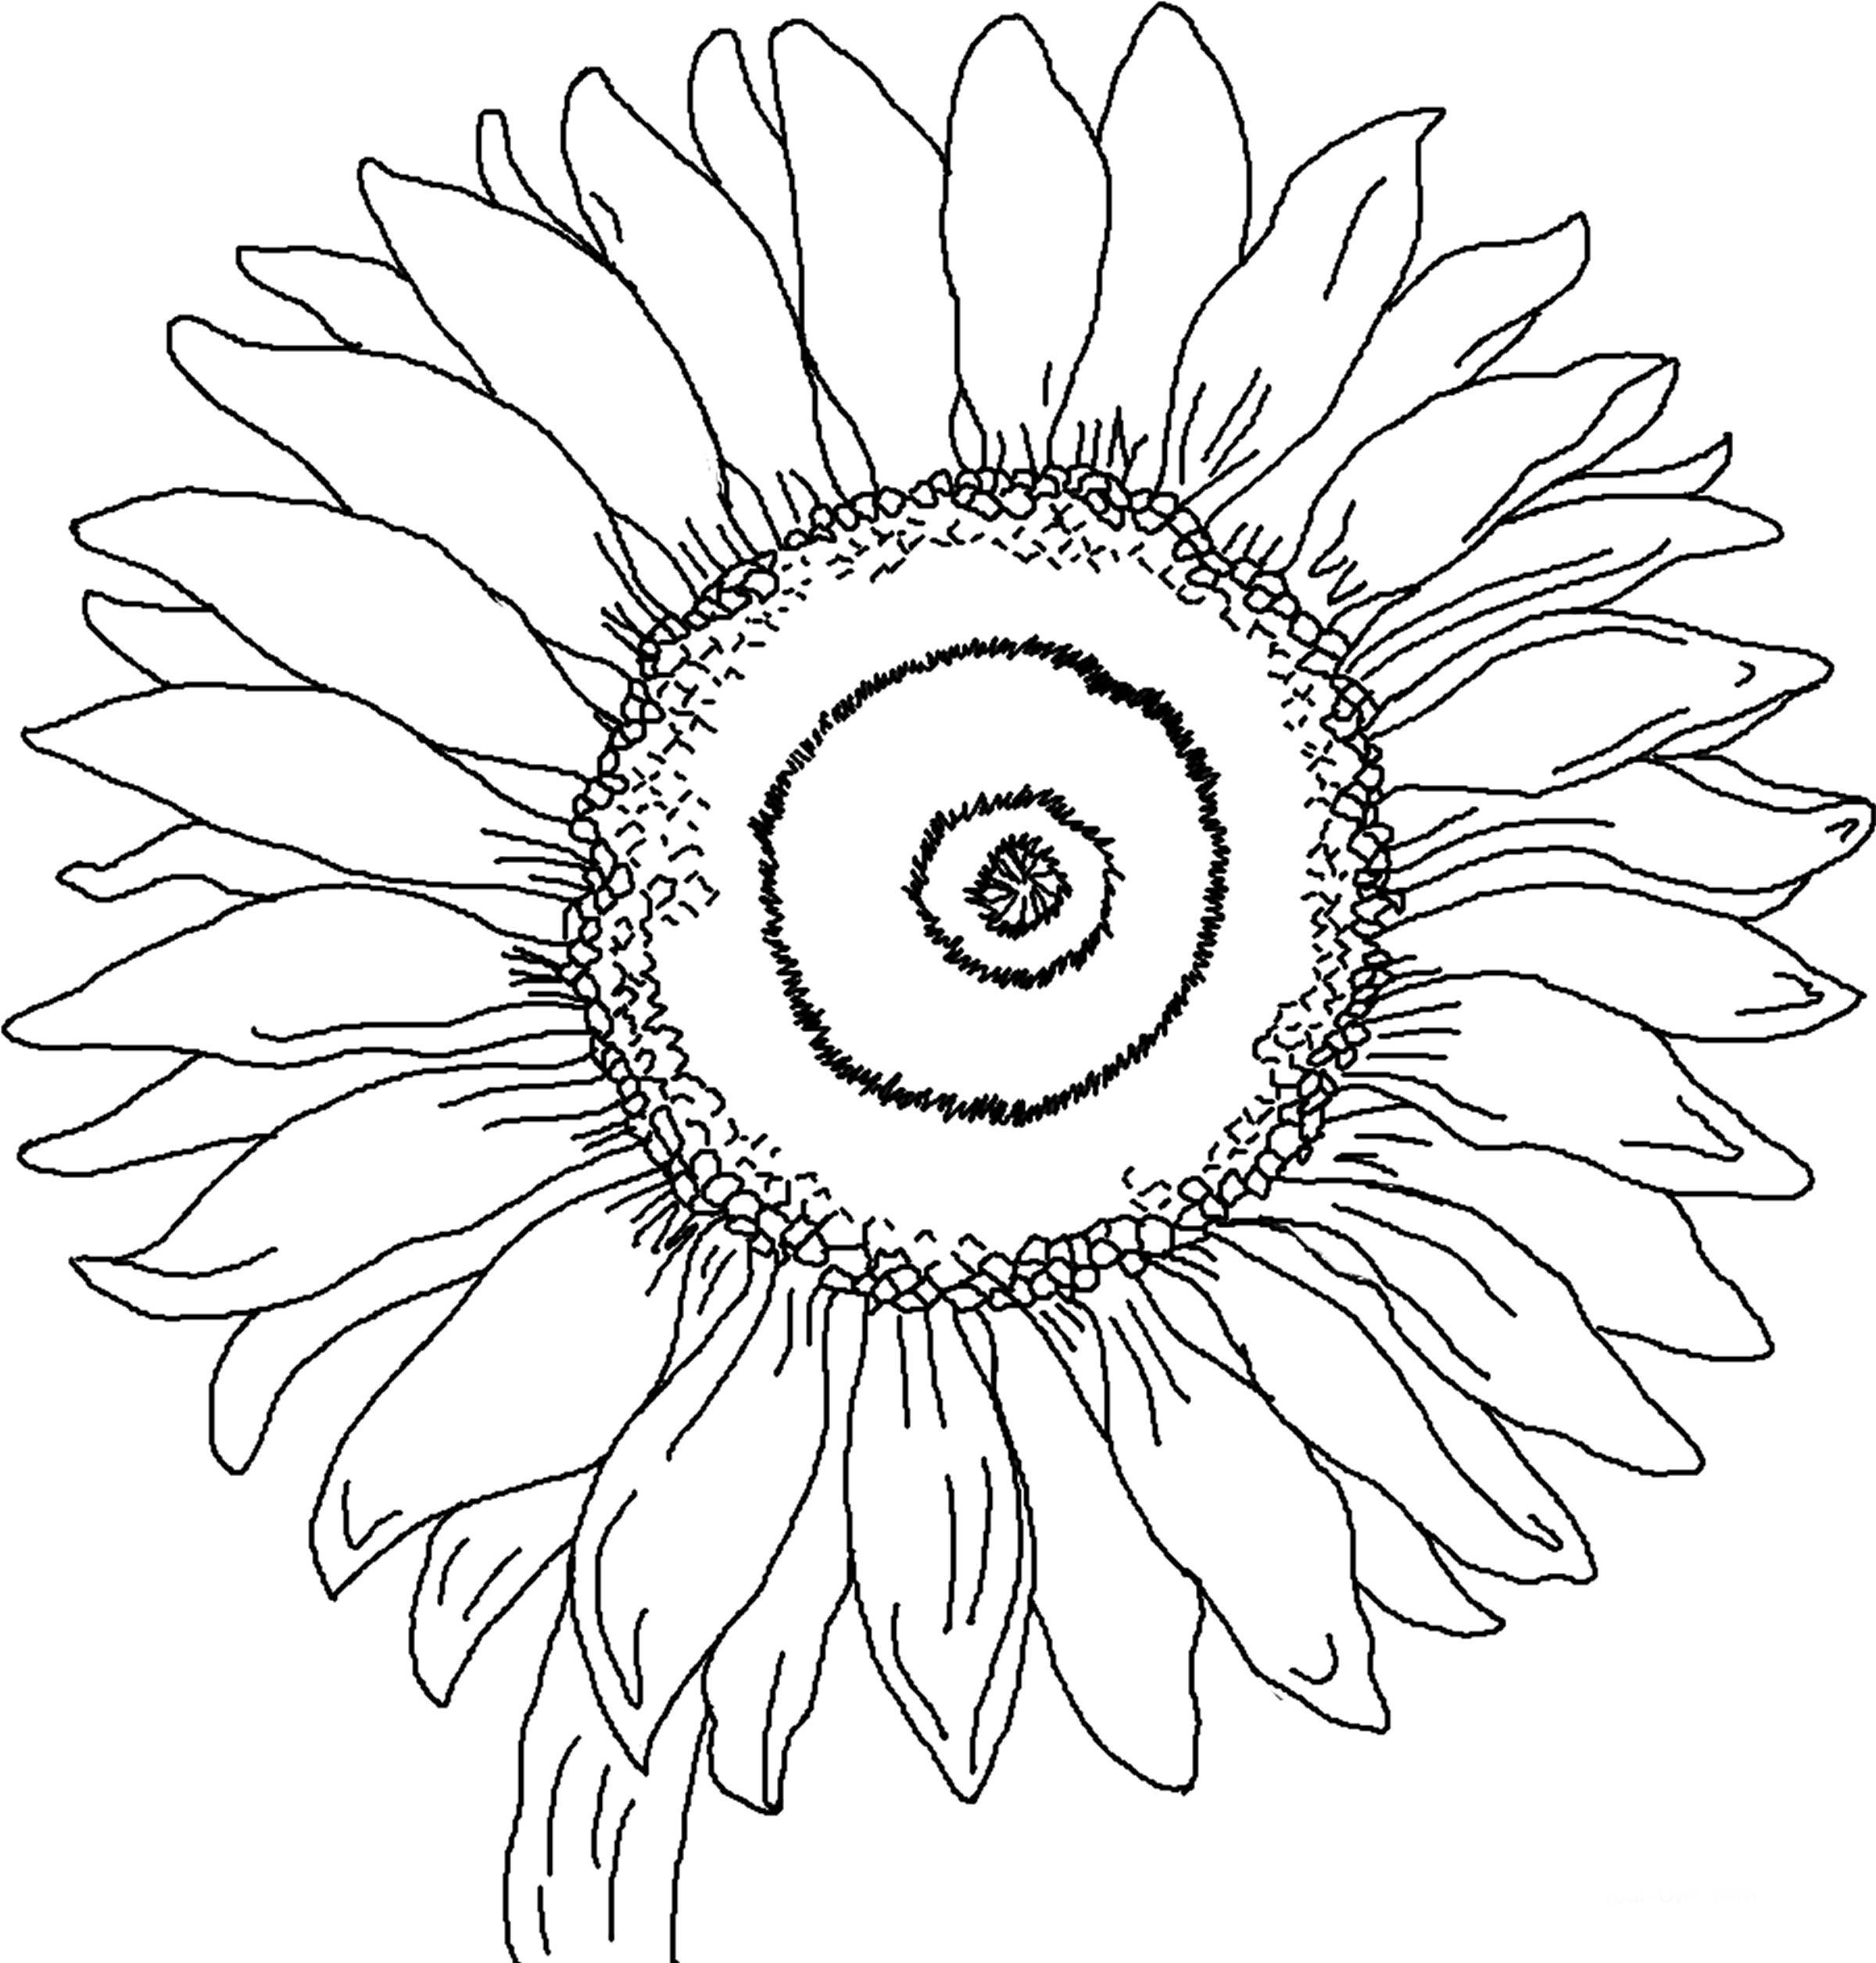 Sunflower Coloring Pages Sunflower Coloring Pages Sunflower